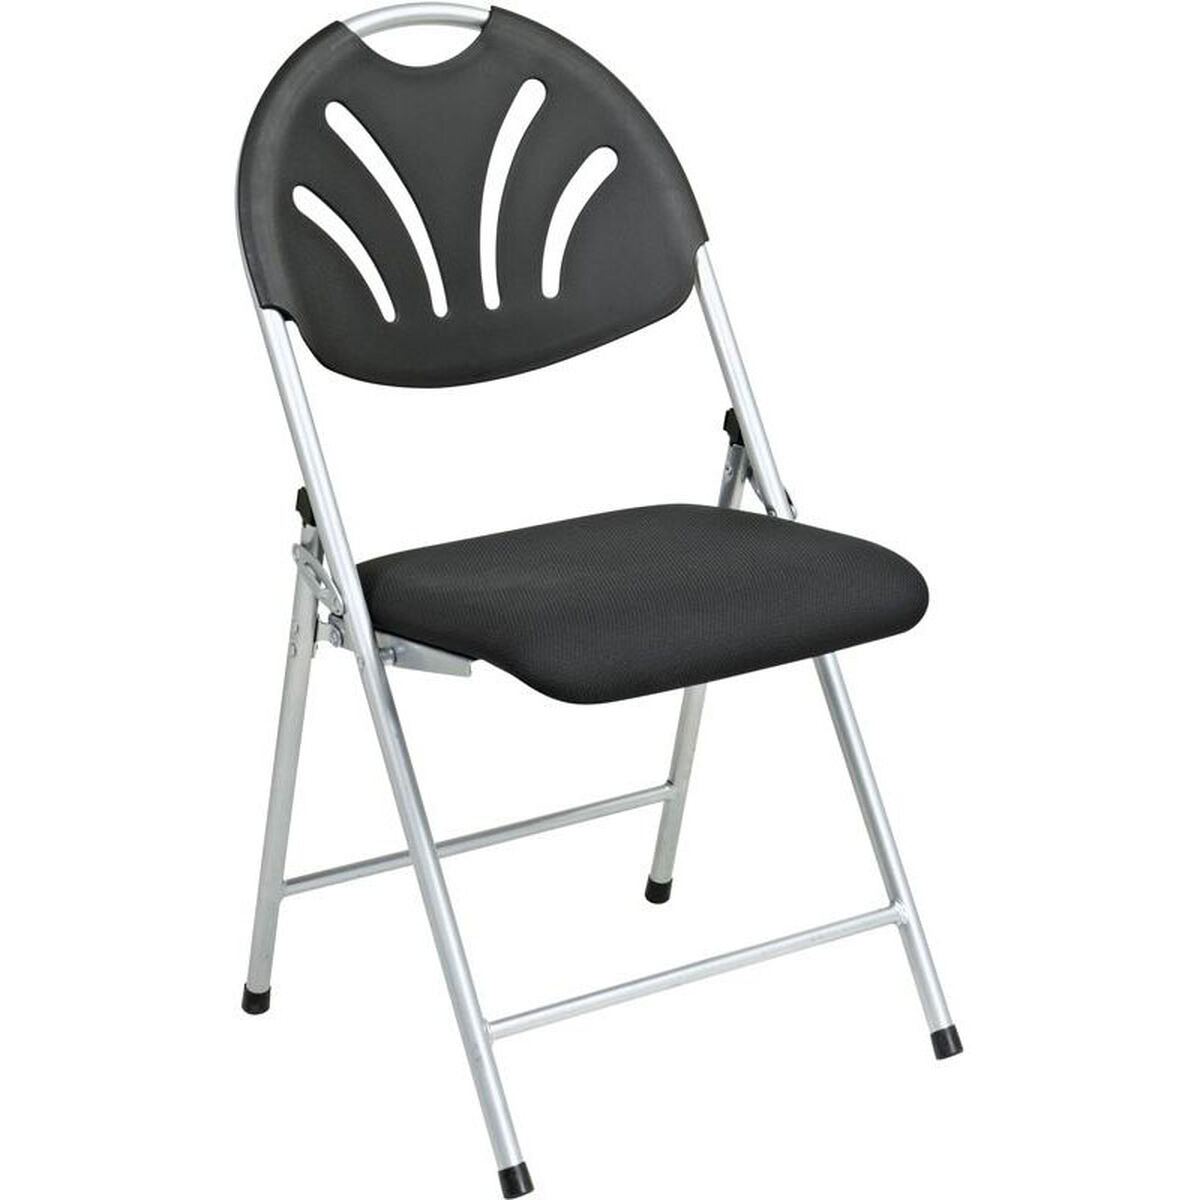 Brilliant Work Smart Plastic Folding Chair With Fan Back And Padded Mesh Seat Set Of 4 Black With Silver Frame Ibusinesslaw Wood Chair Design Ideas Ibusinesslaworg